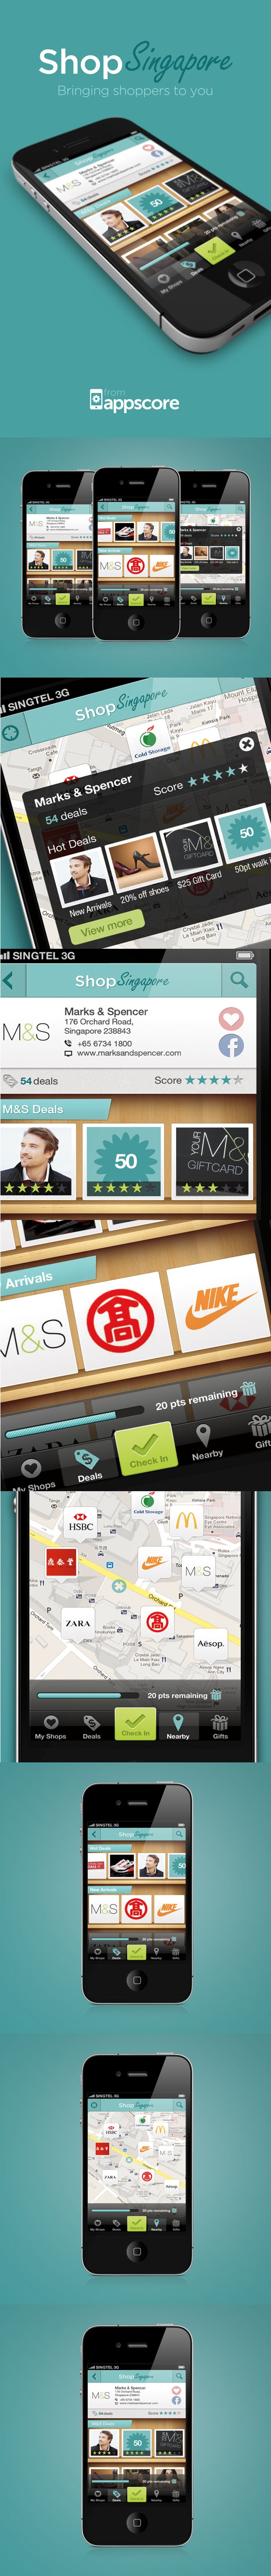 Shop Singapore iPhone application design by Mike Thomas, via Behance